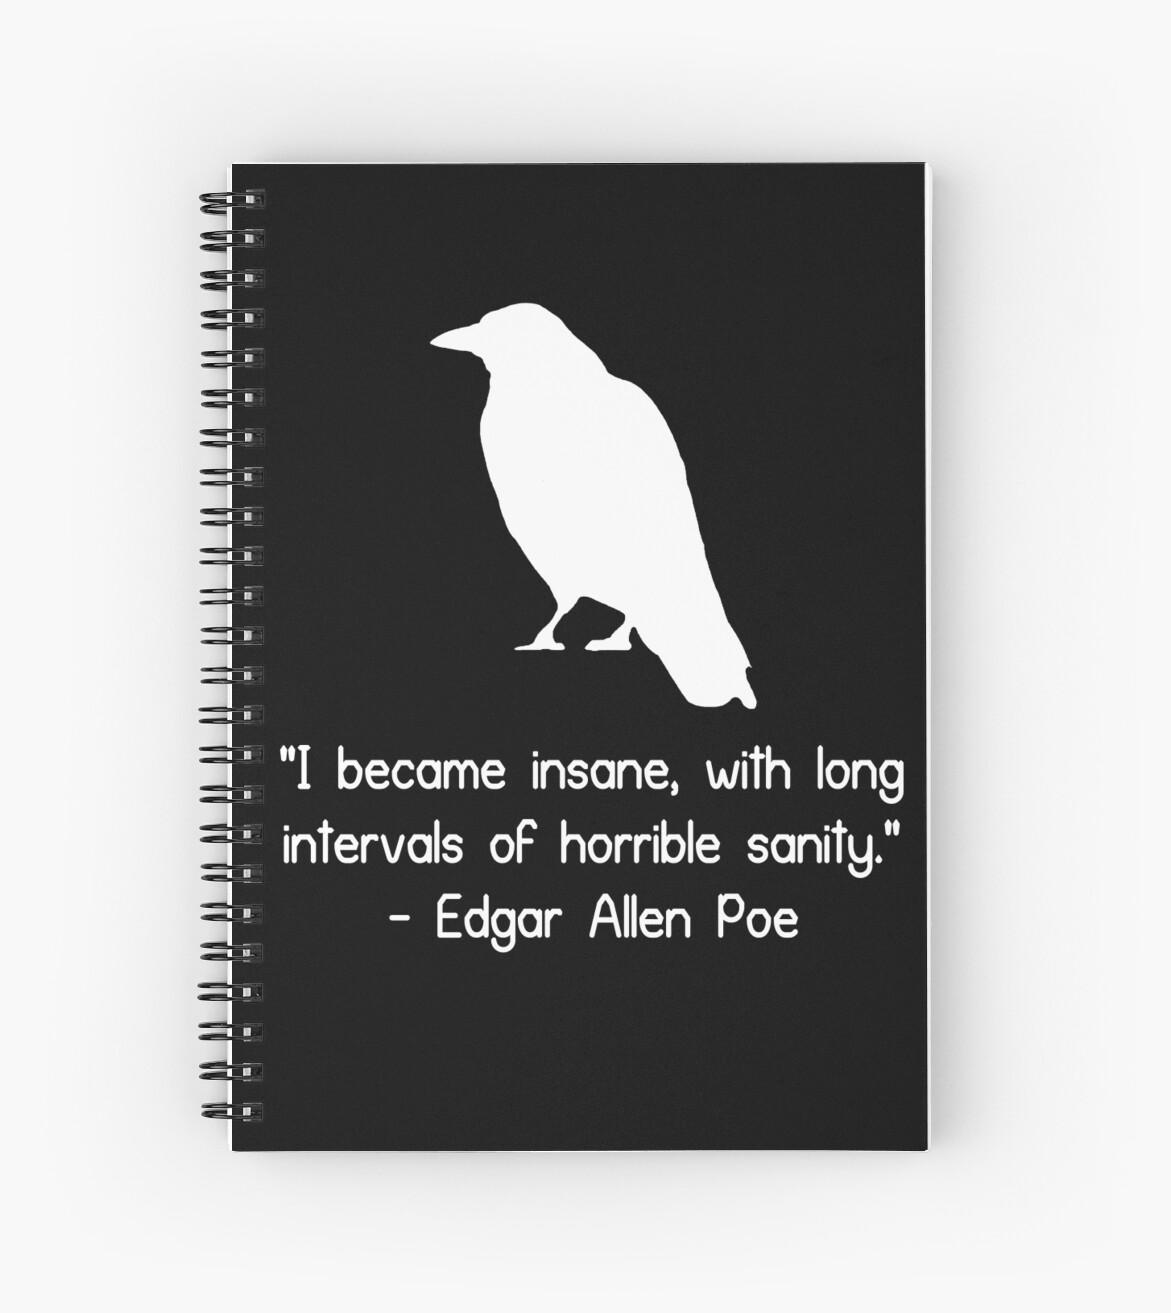 i became insane edgar allen poe quote geek funny nerd spiral i became insane edgar allen poe quote geek funny nerd